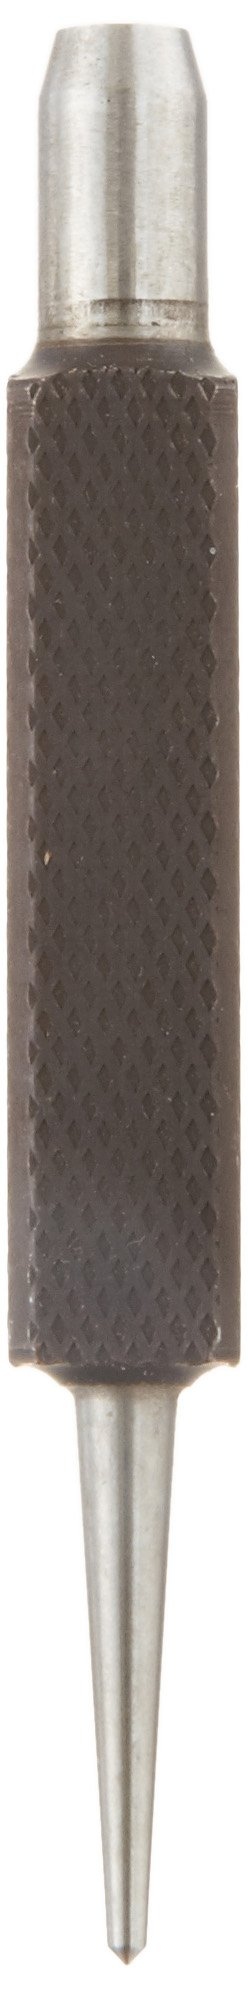 Starrett 264A Center Punch With Square Shank, 3'' Length, 1/16'' Tapered Point Diameter, 3/8'' Square Thickness